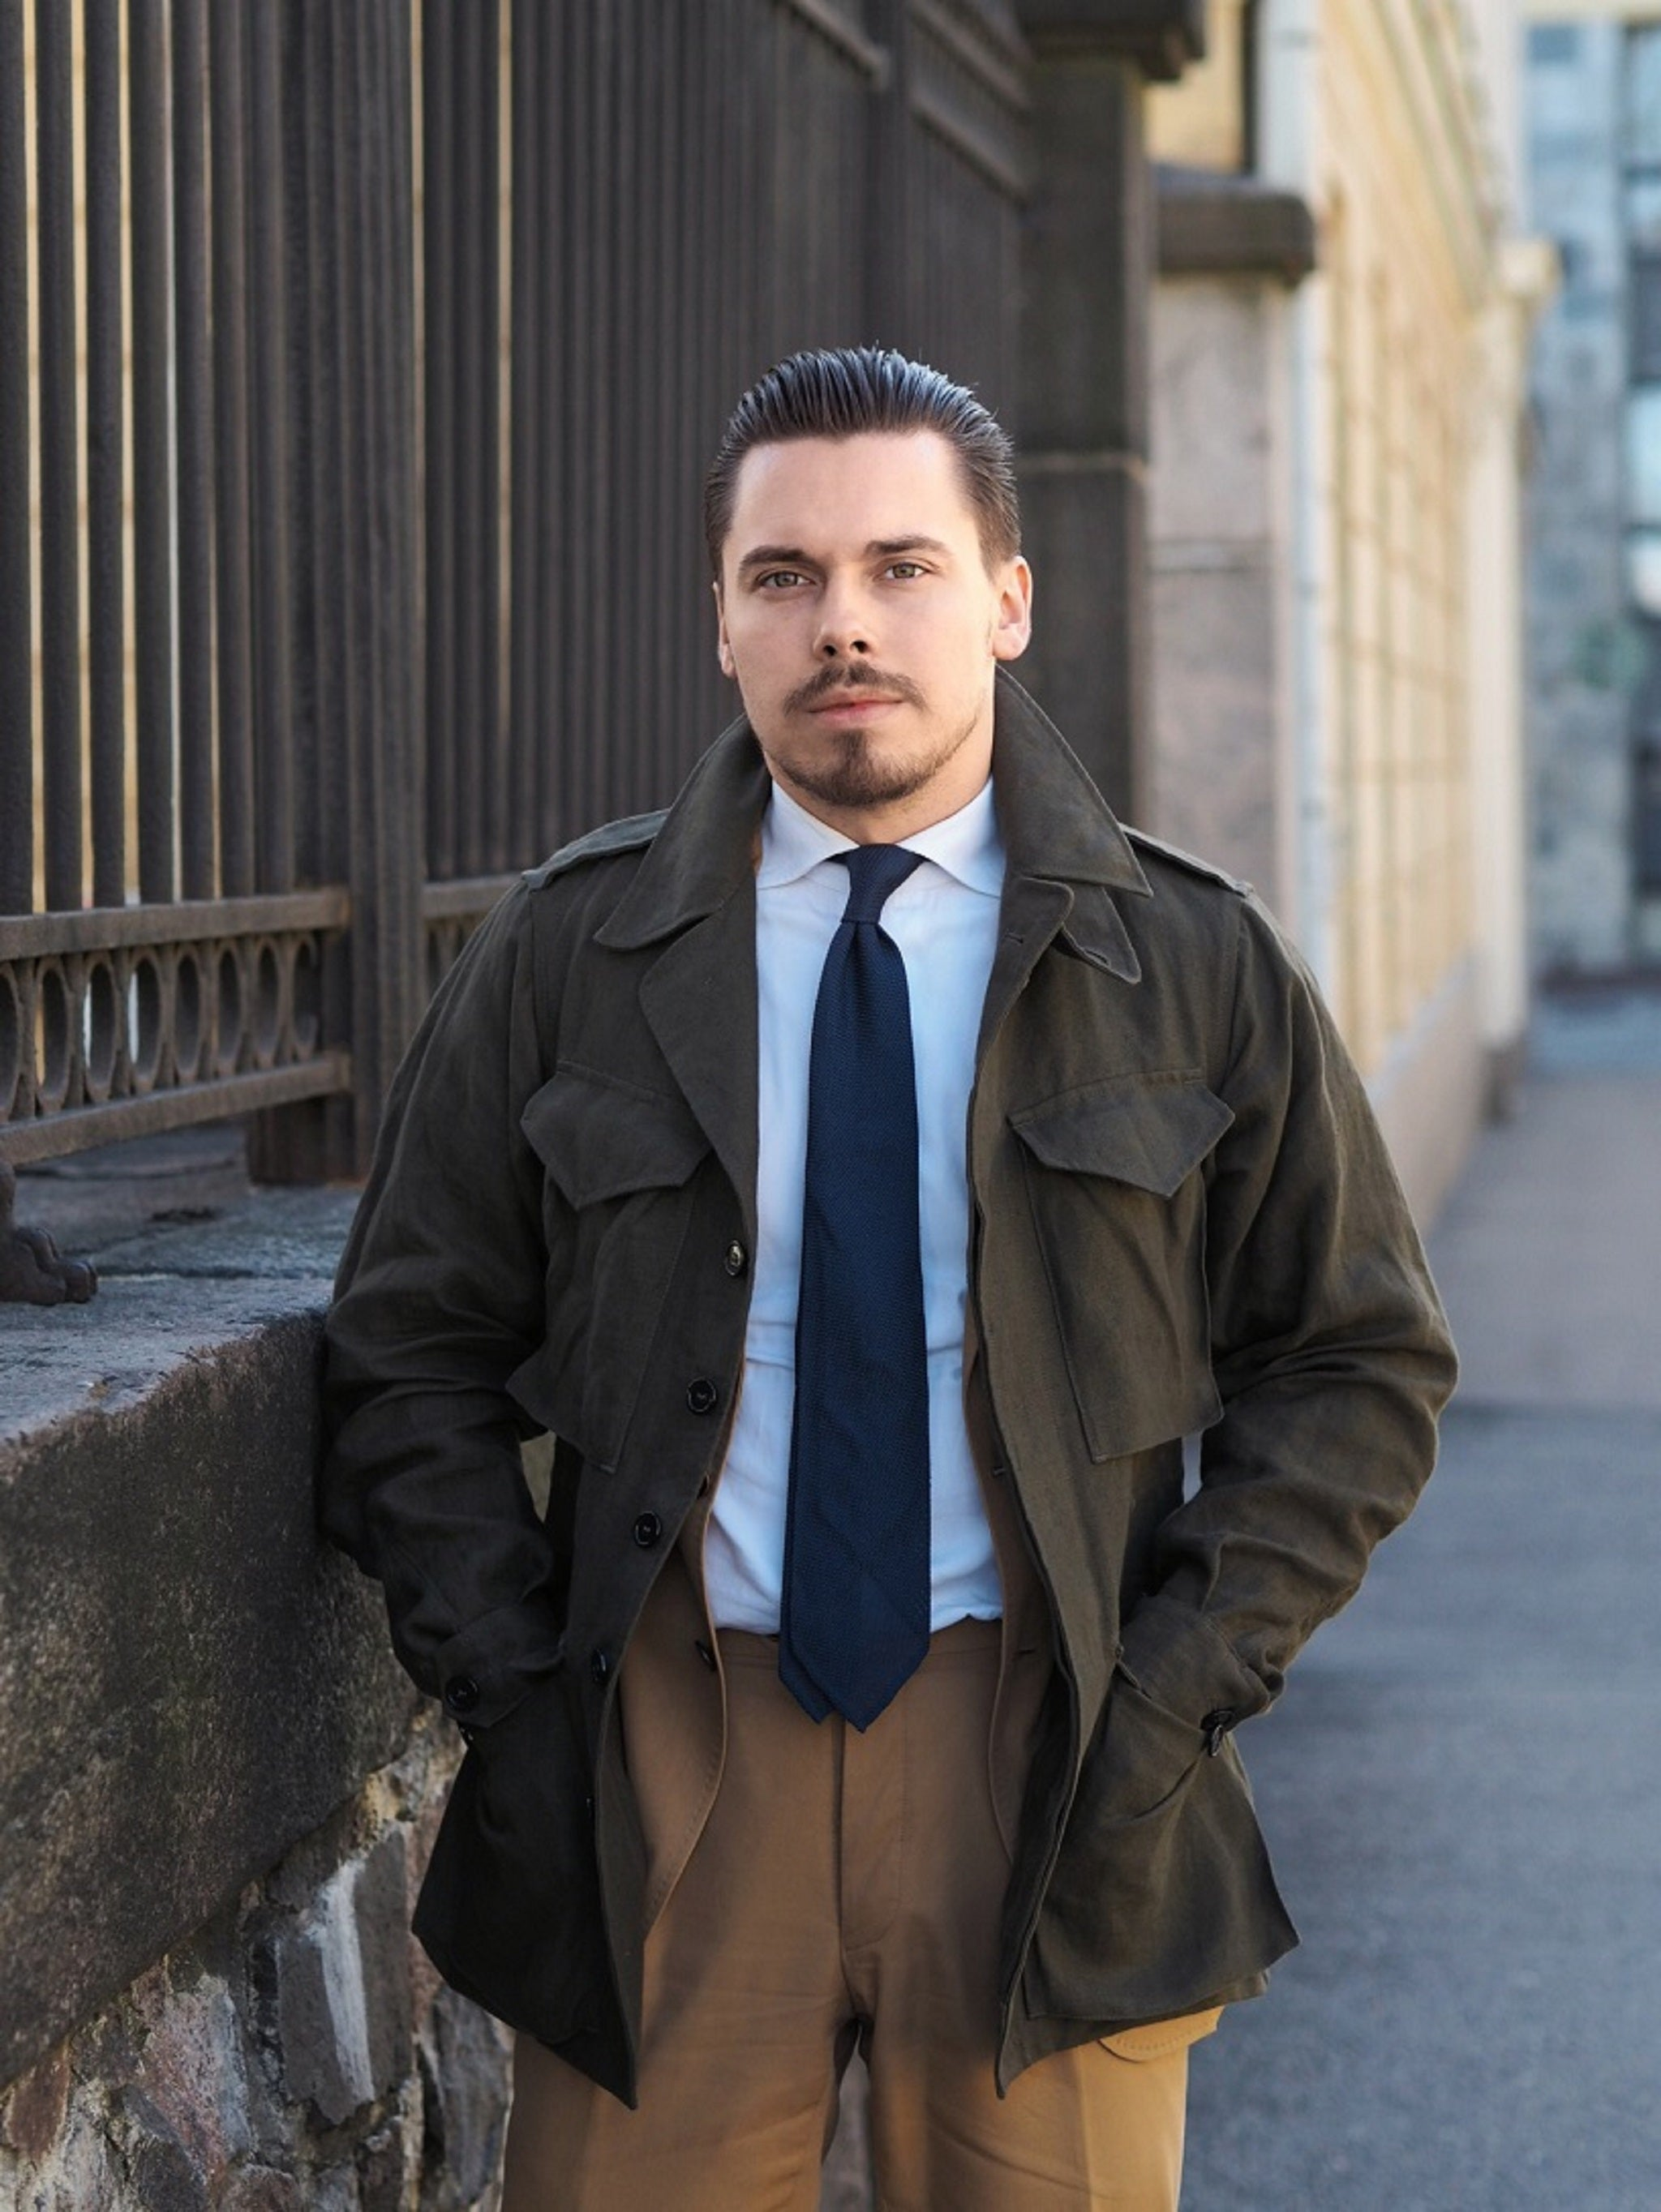 Drakes-version-of-the-M43-field-jacket-with-cotton-suit